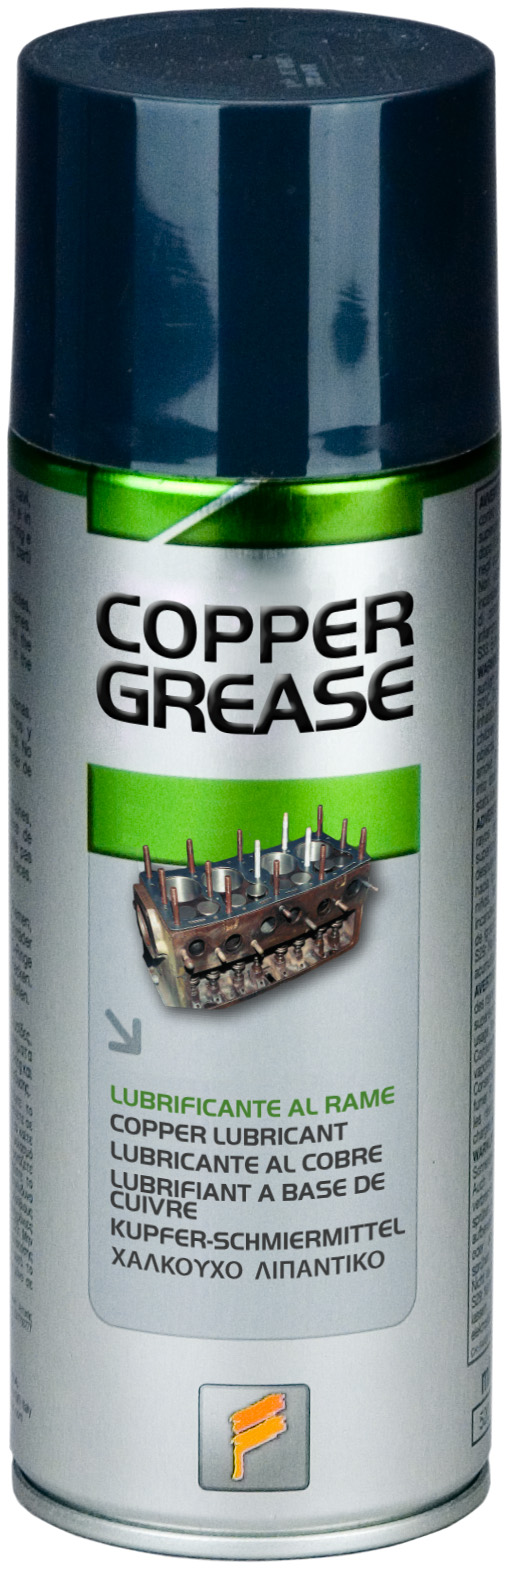 COPPER GREASE - 400 ml